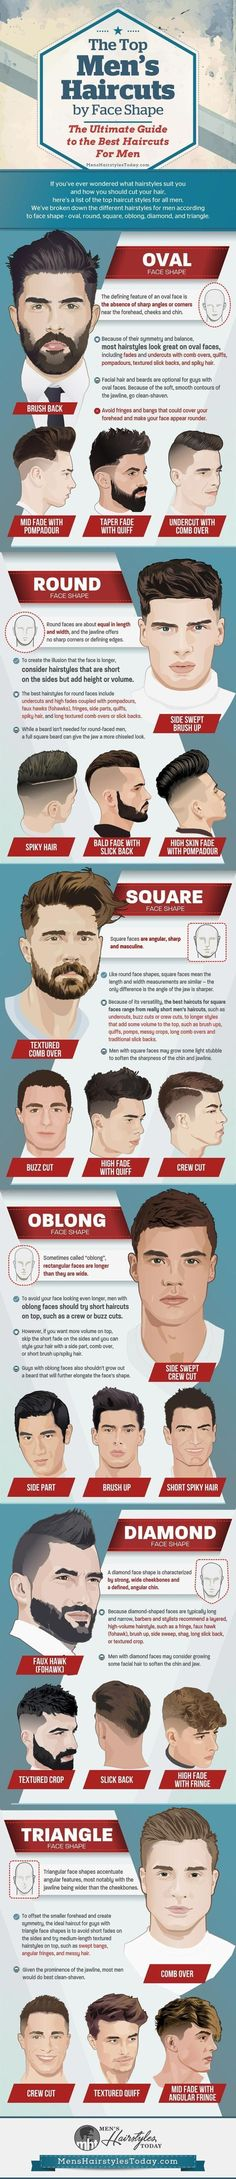 The Best Hairstyles For Men By Face Shape - The Ultimate Guide to Cool Men's Haircuts (Fades, Undercuts, Pompadours, Side Parts, Comb Overs, Quiffs, and Spiky Hair) #3dprintinginfographic #menshairstylessidepart